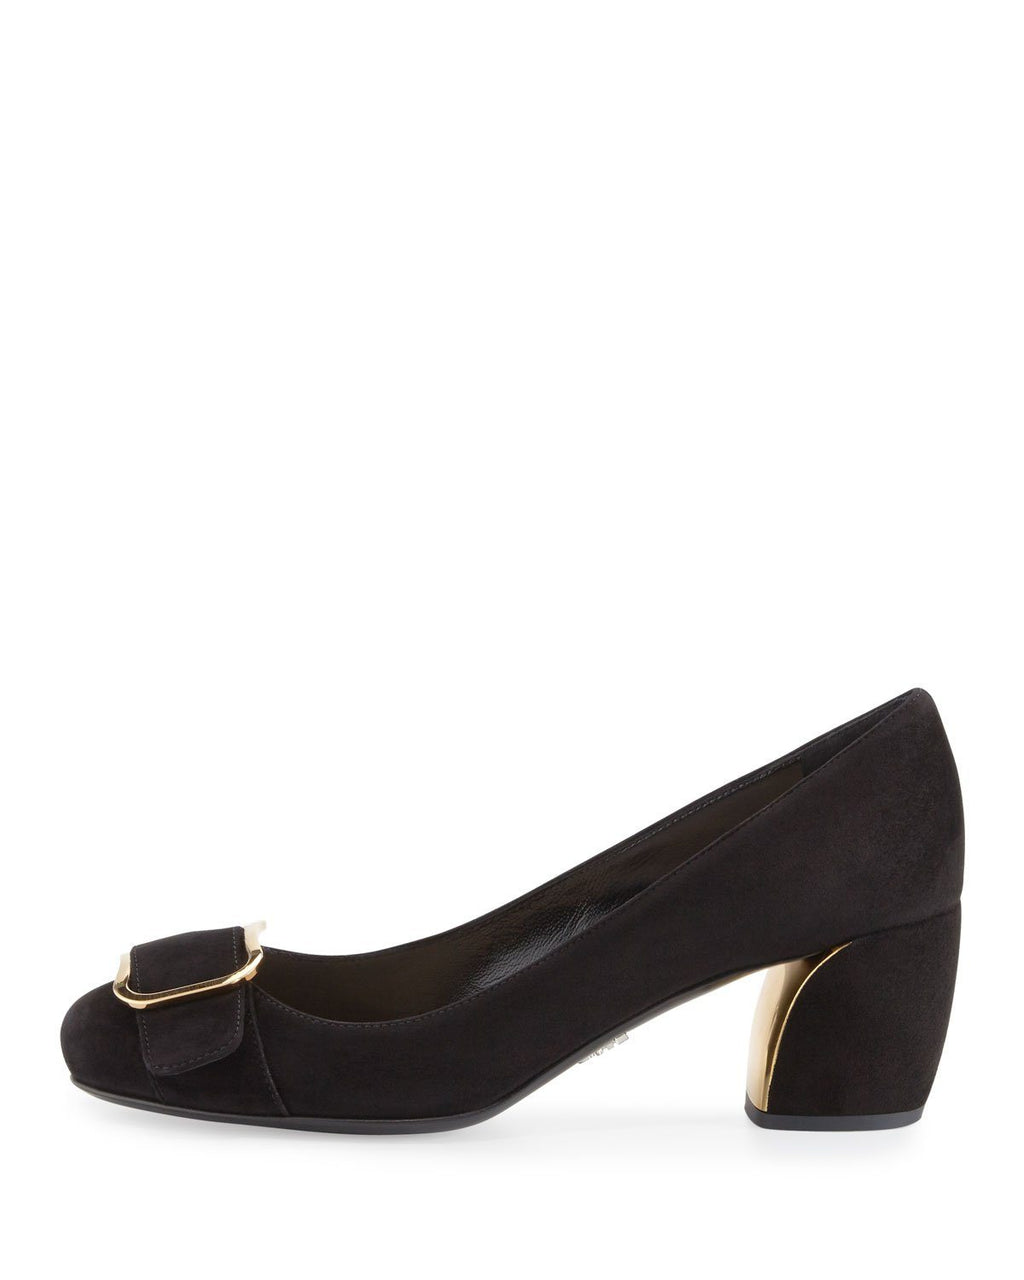 Prada Suede Buckle-Toe 55mm Pump